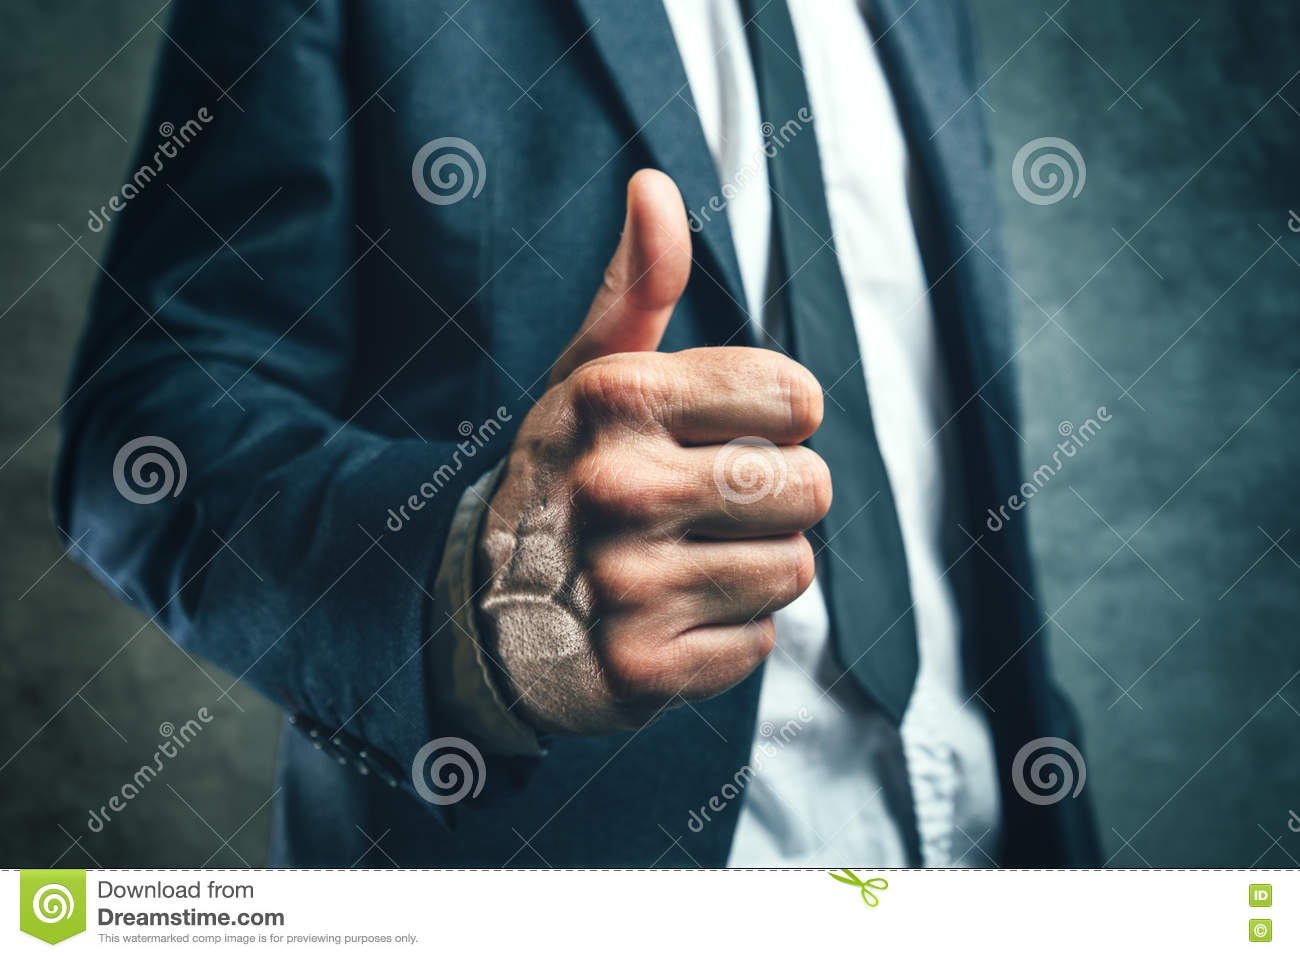 Gaining bosses approval, businessperson gesturing thumb up